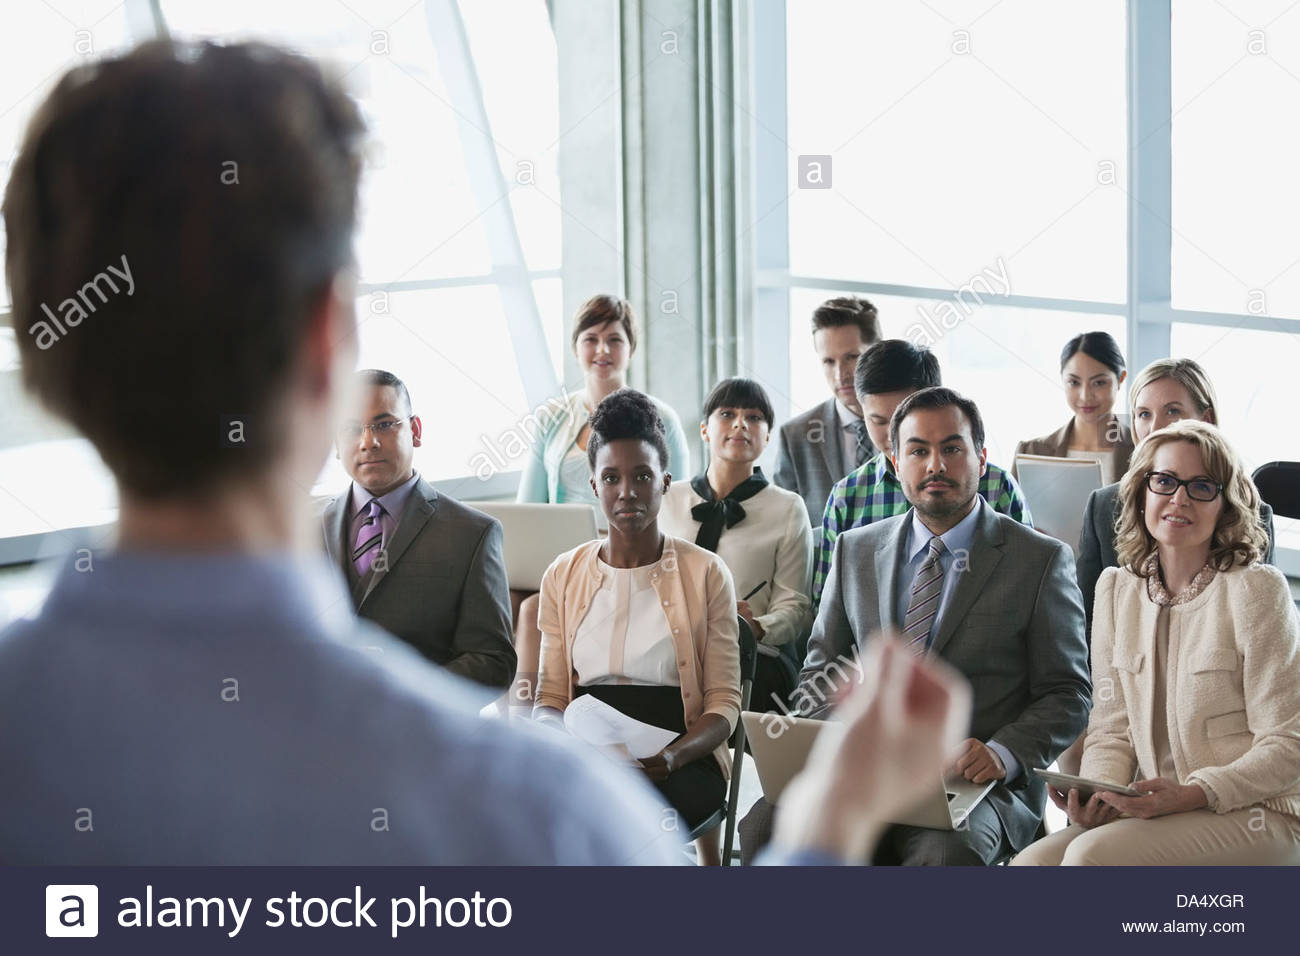 Group of business people at presentation in office building - Stock Image